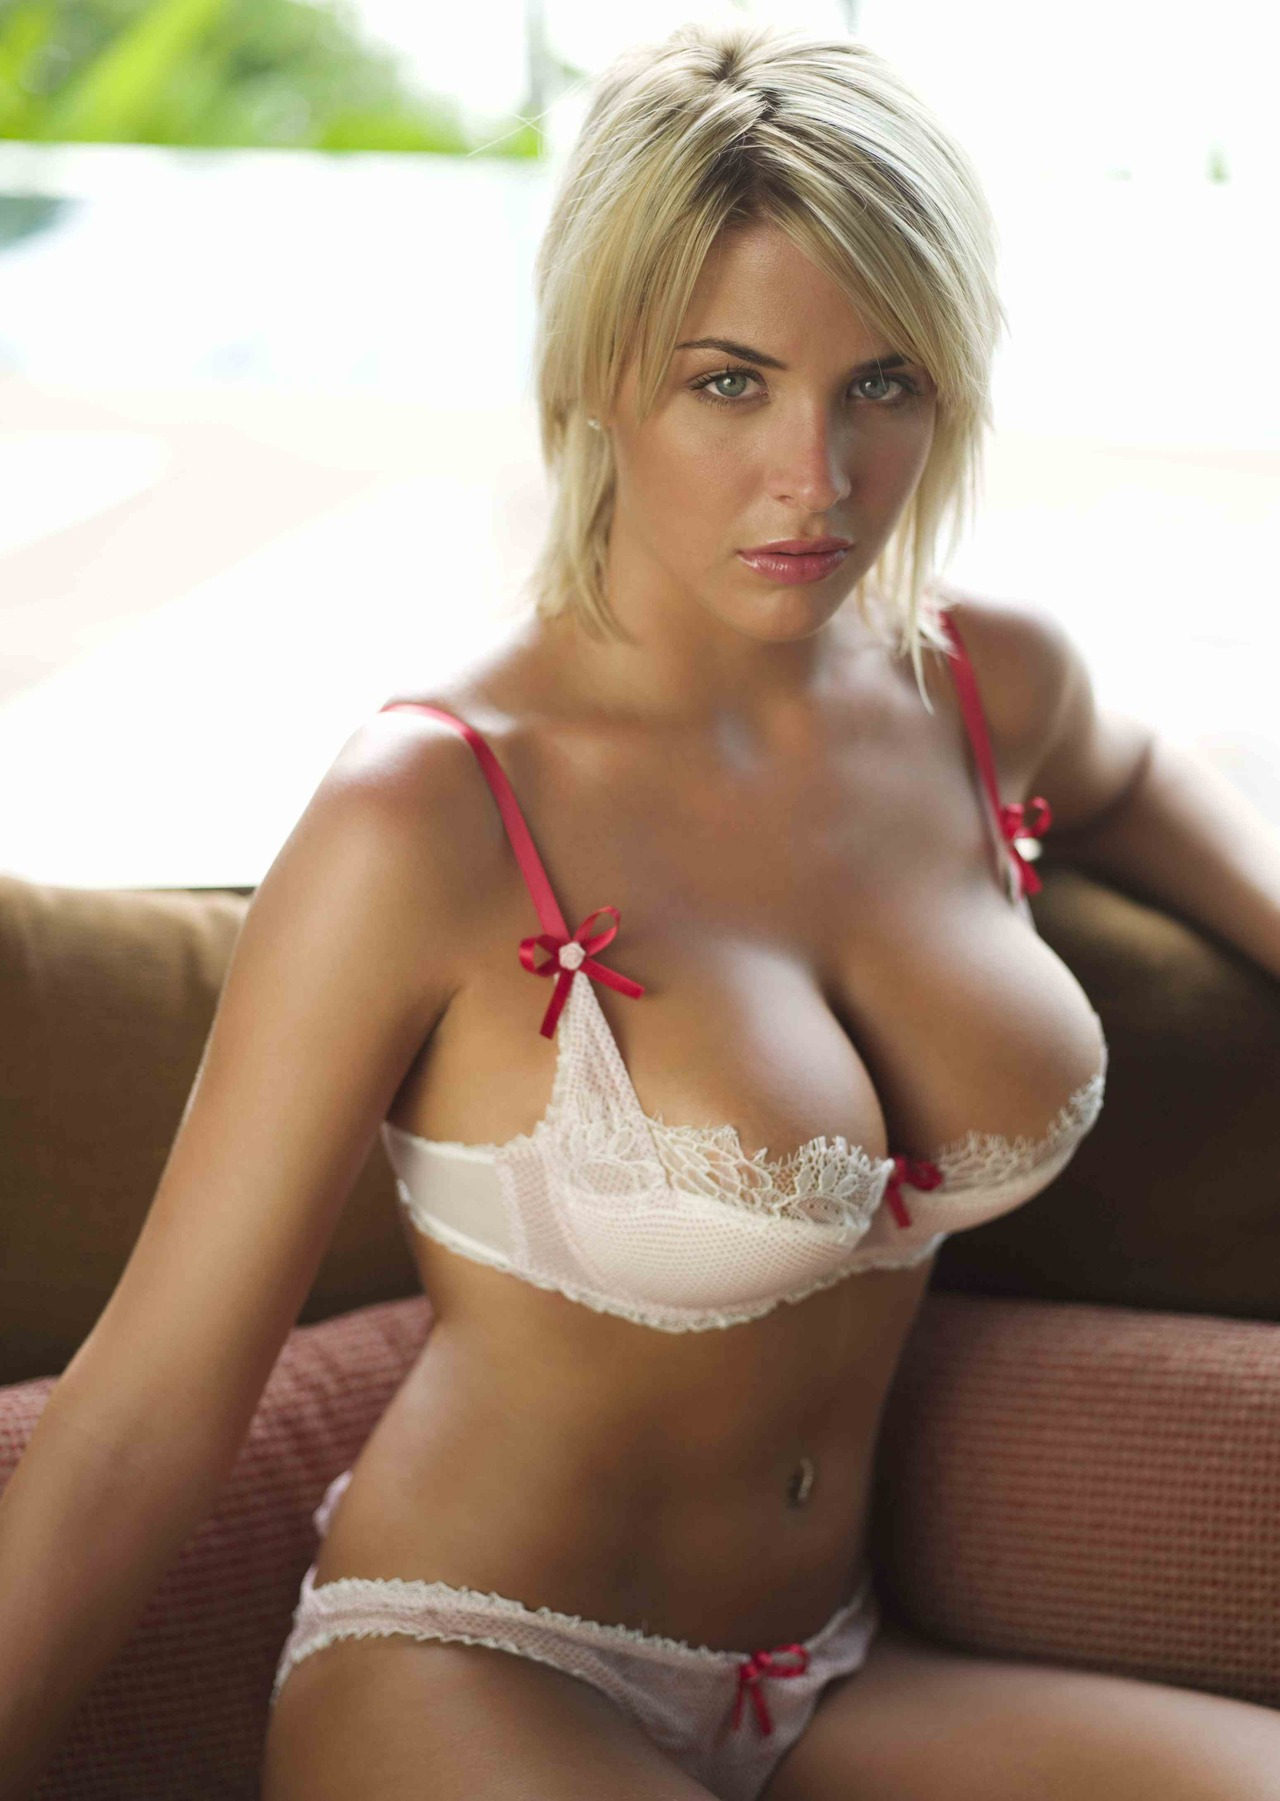 Fuck Gemma Atkinson nude photos 2019